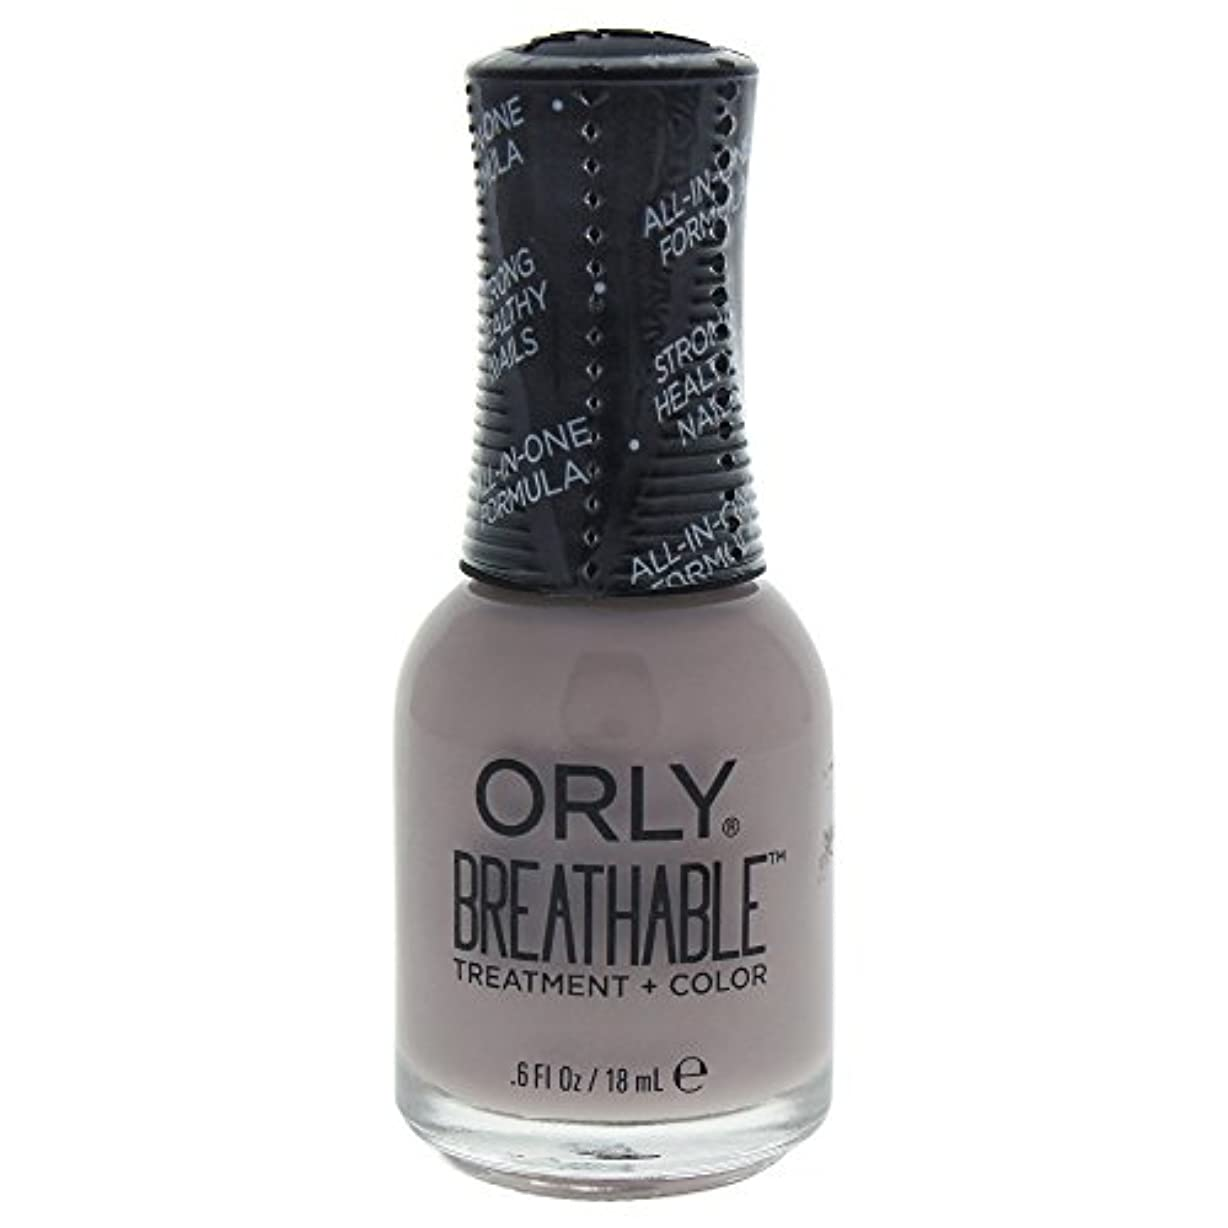 Orly Breathable Treatment + Color Nail Lacquer - Staycation - 0.6oz / 18ml